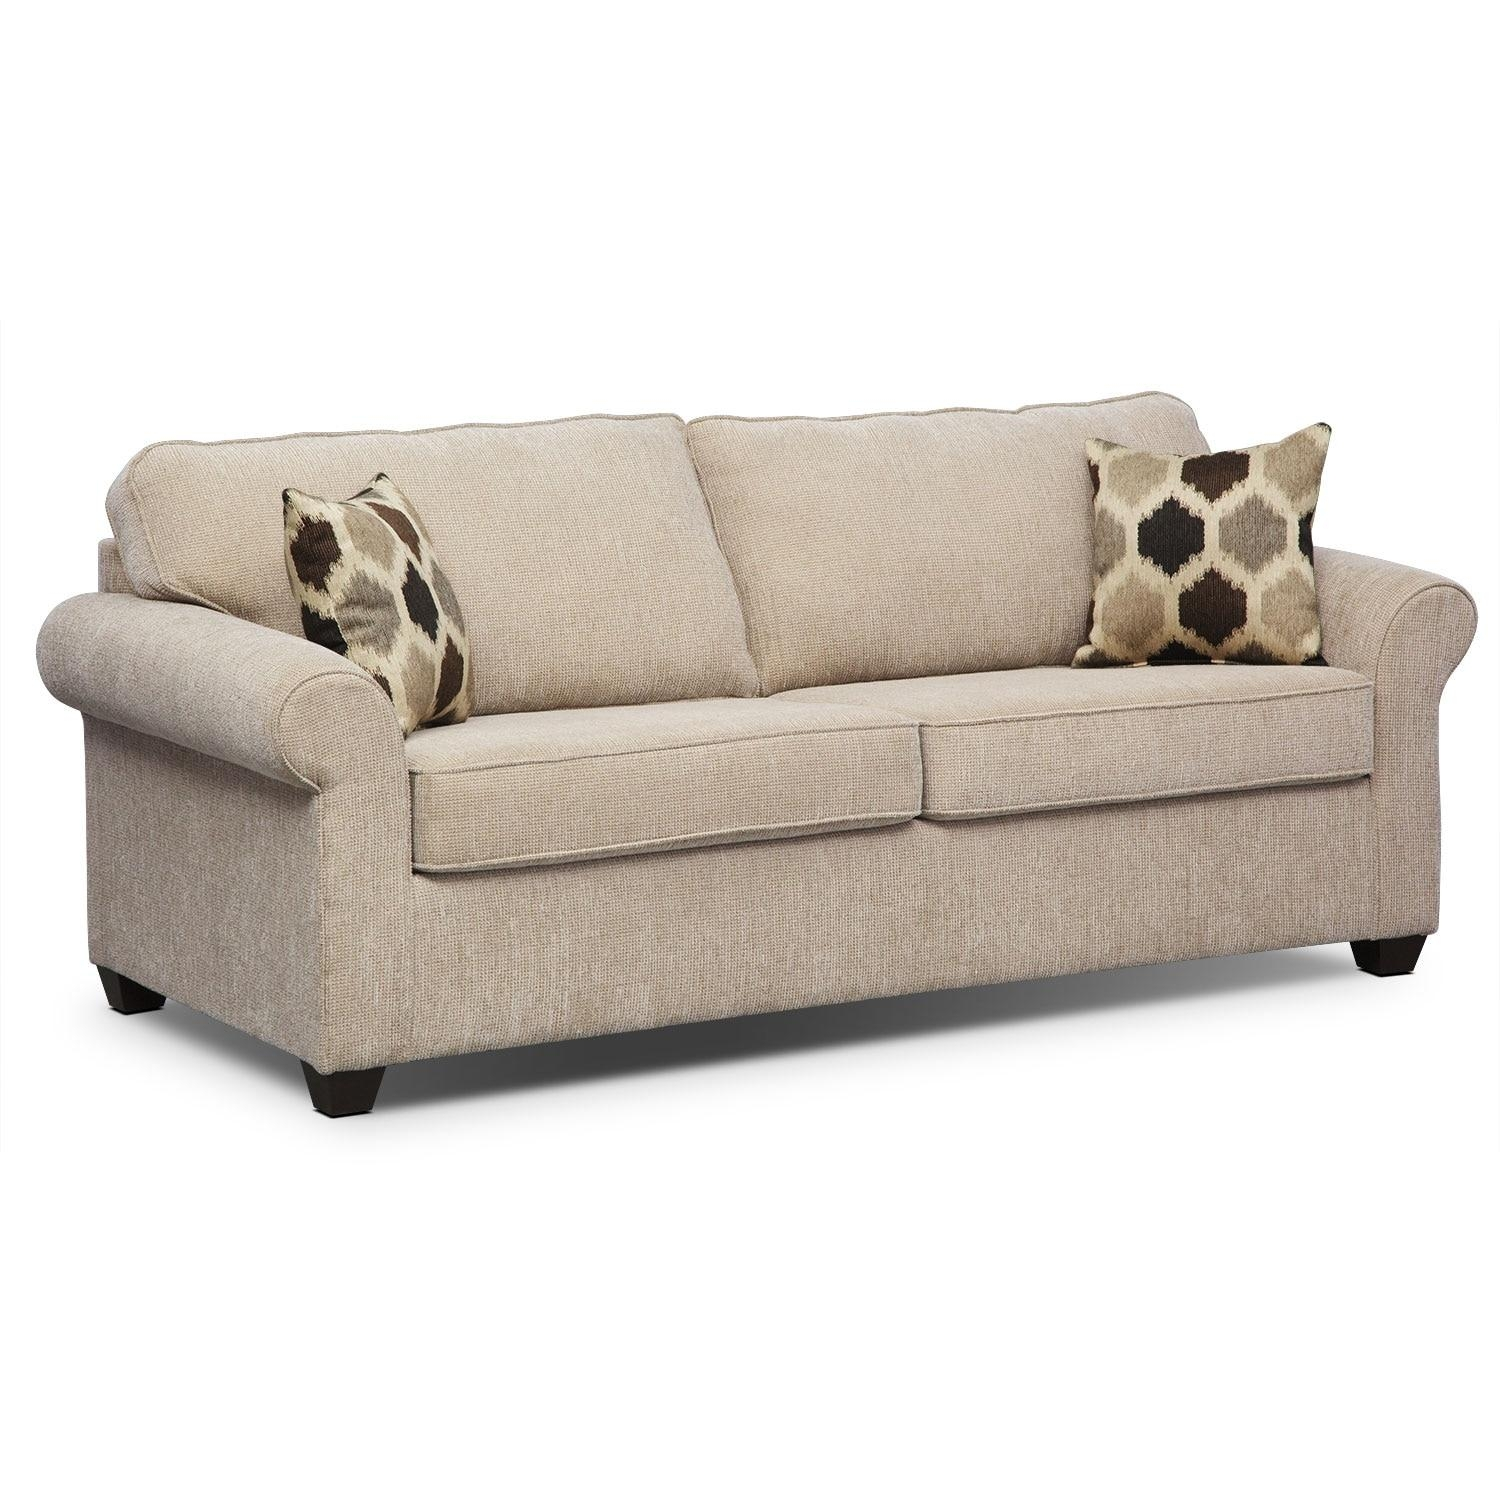 The Fletcher Collection – Beige | Value City Furniture With Regard To City Sofa Beds (View 5 of 20)